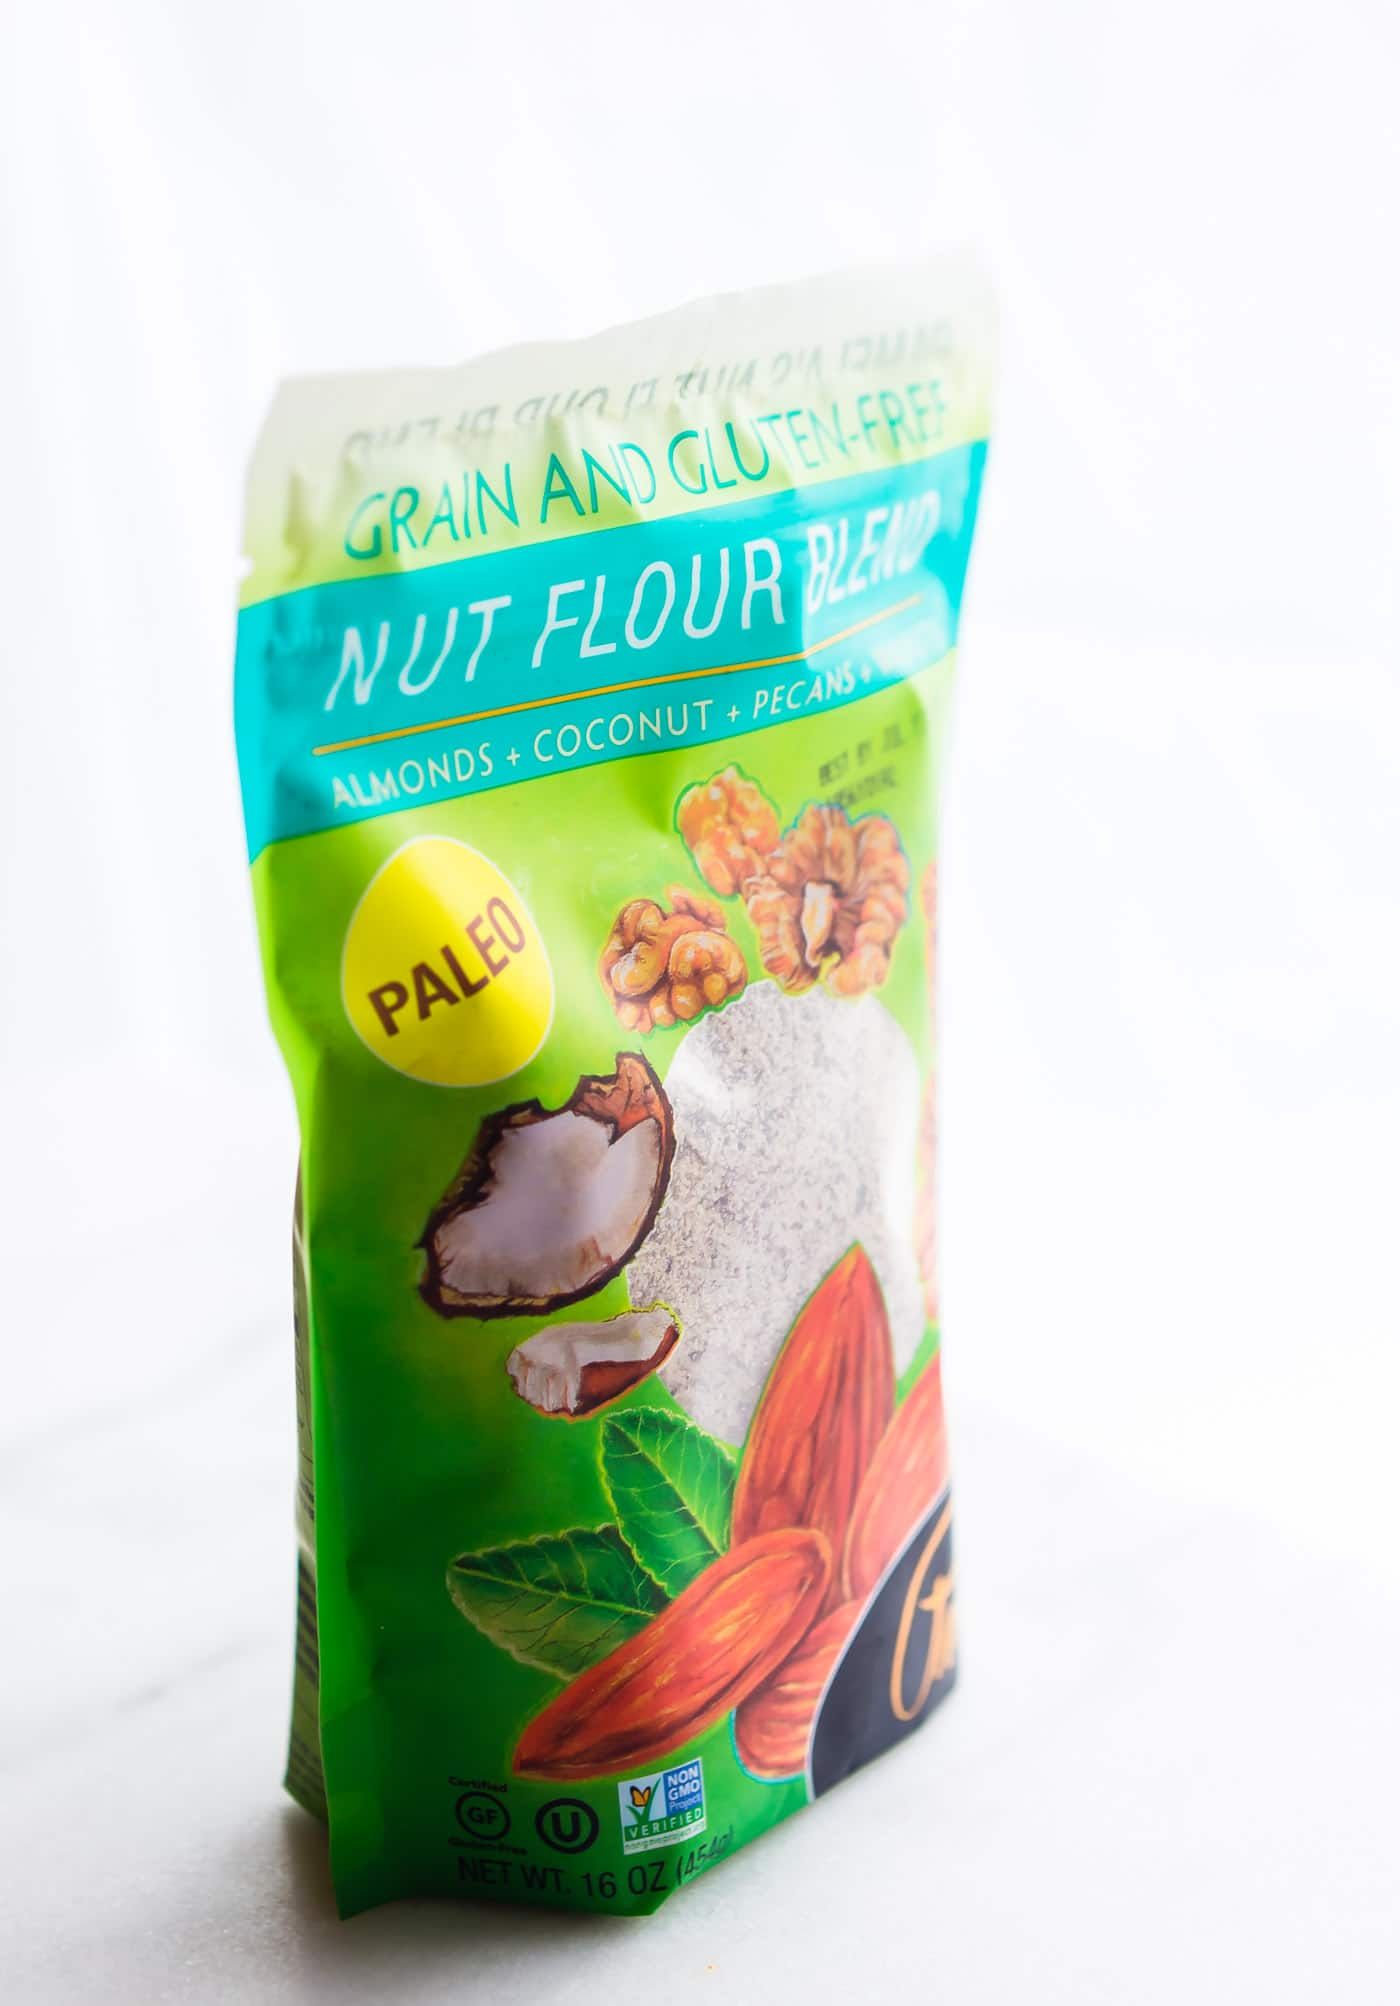 paleo nut flour from Pamela's